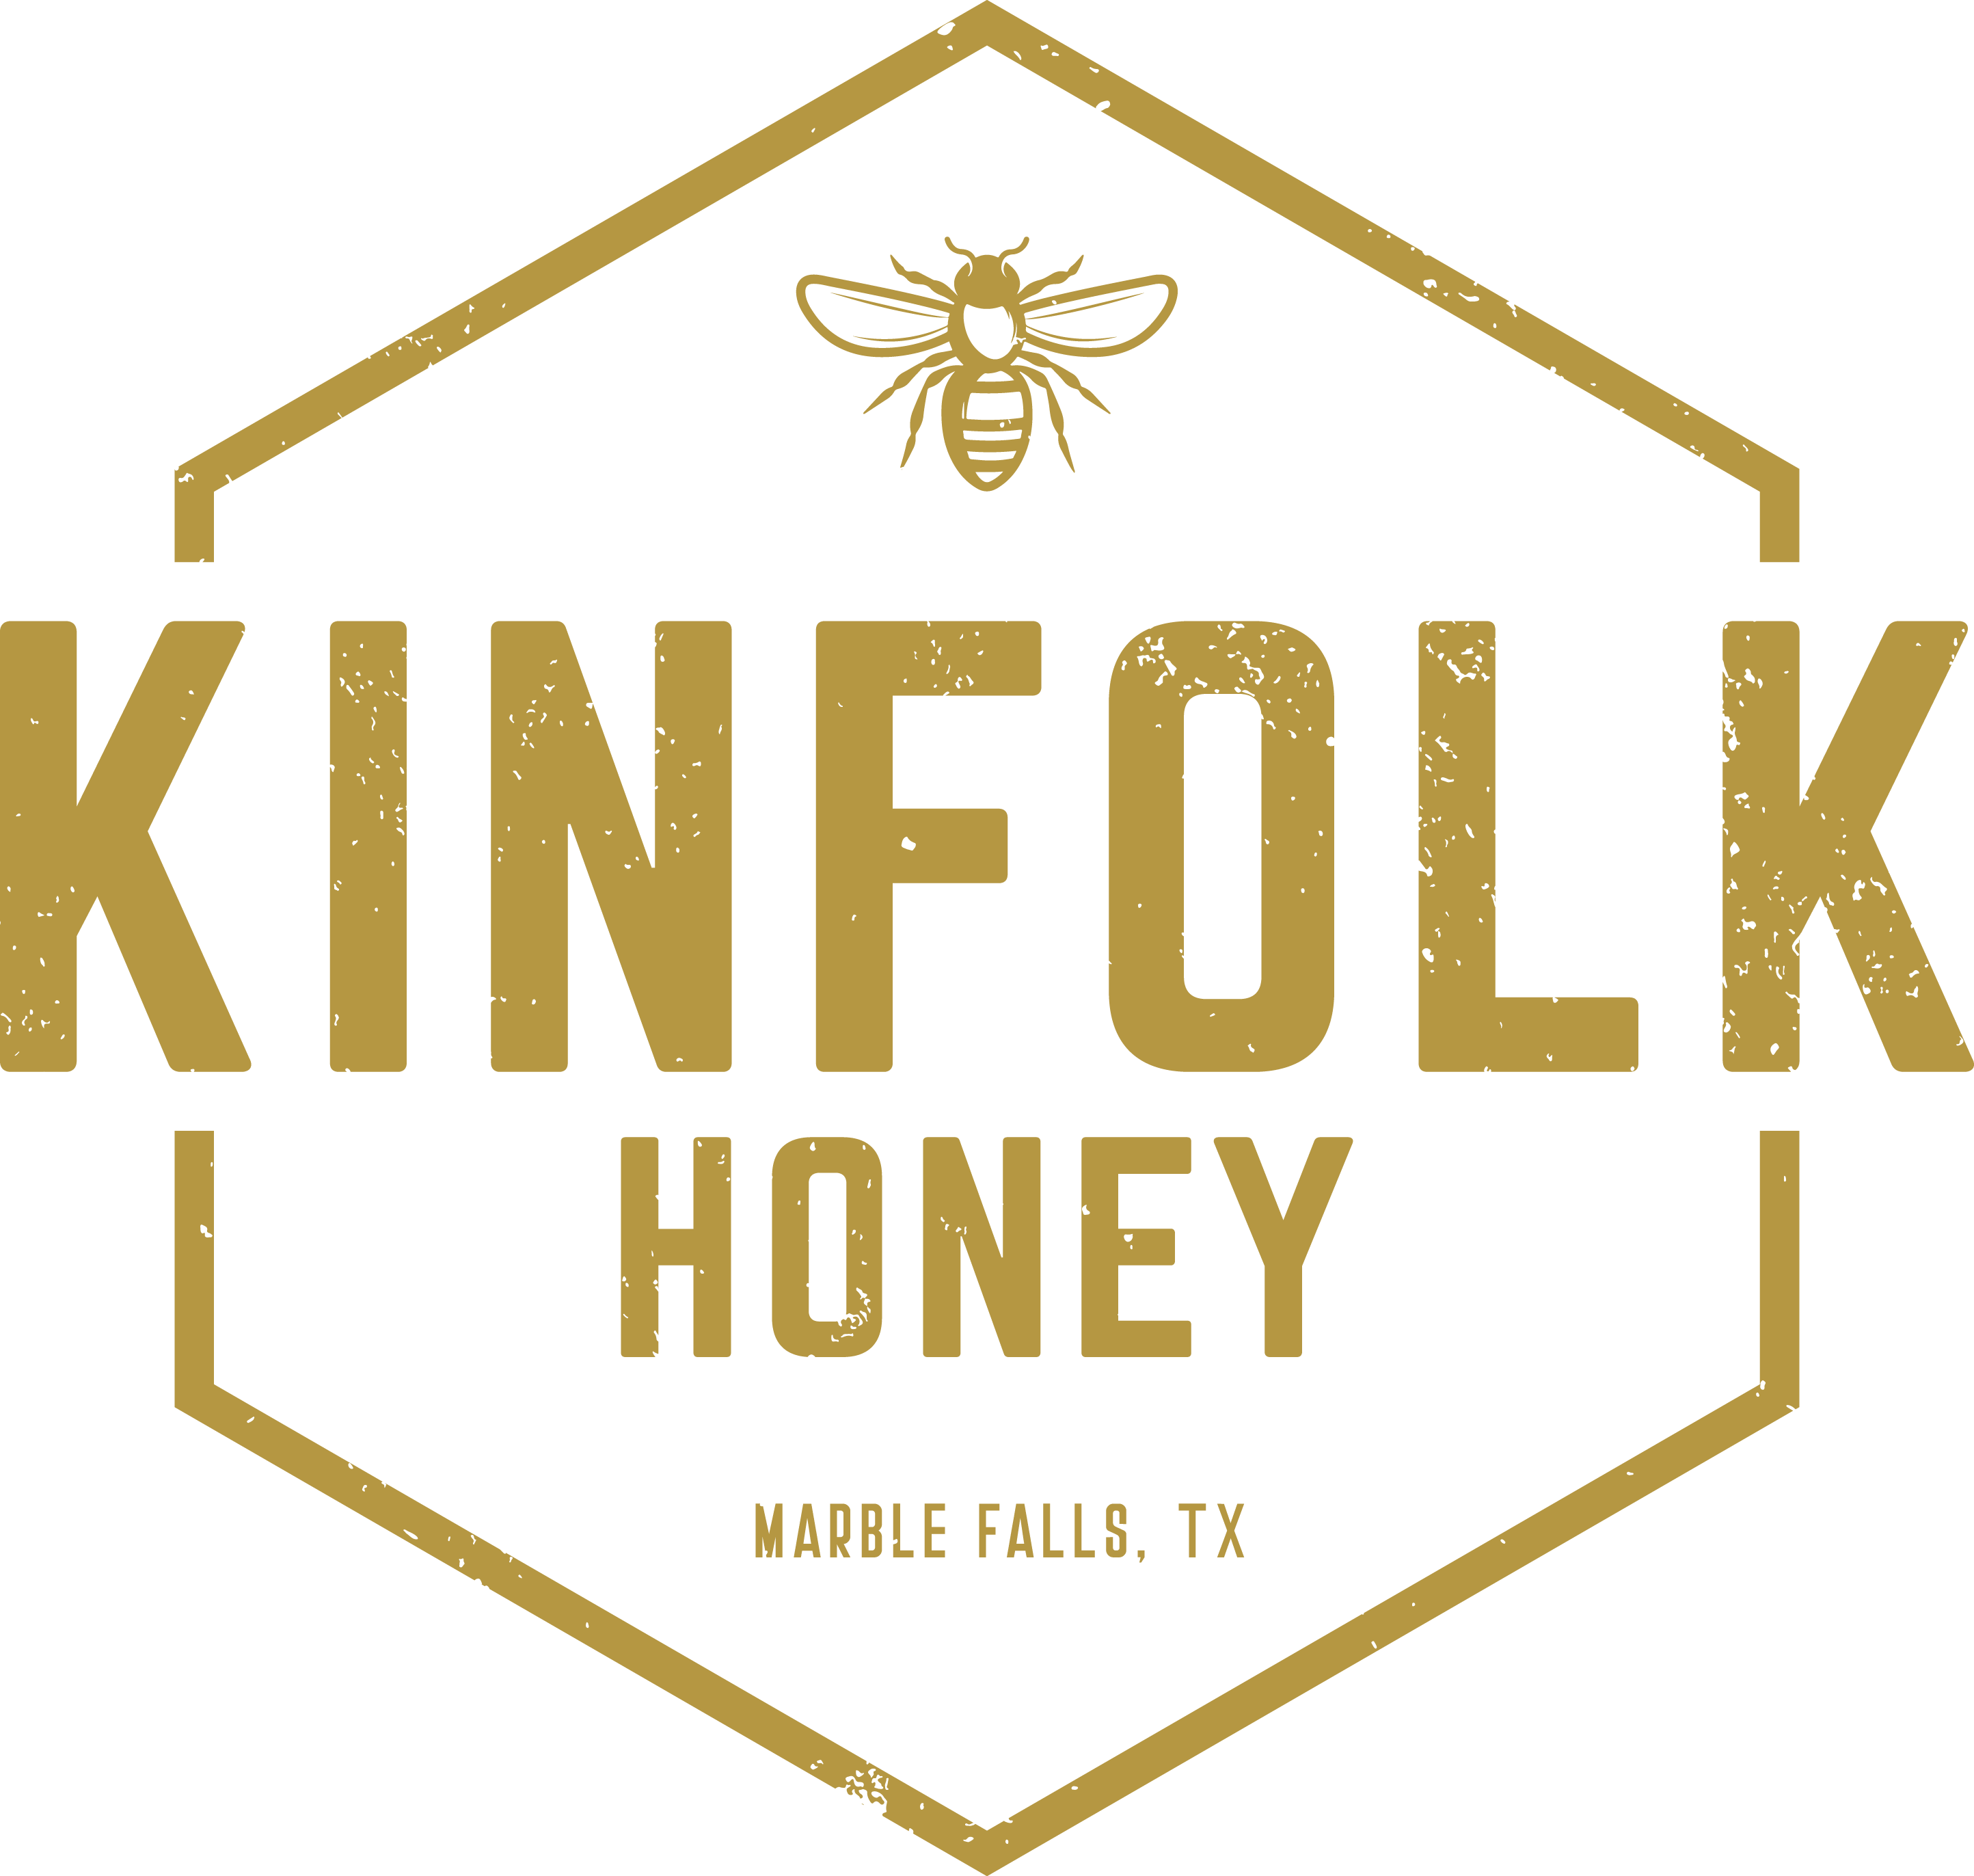 T-shirt design for a beekeeping business in Texas